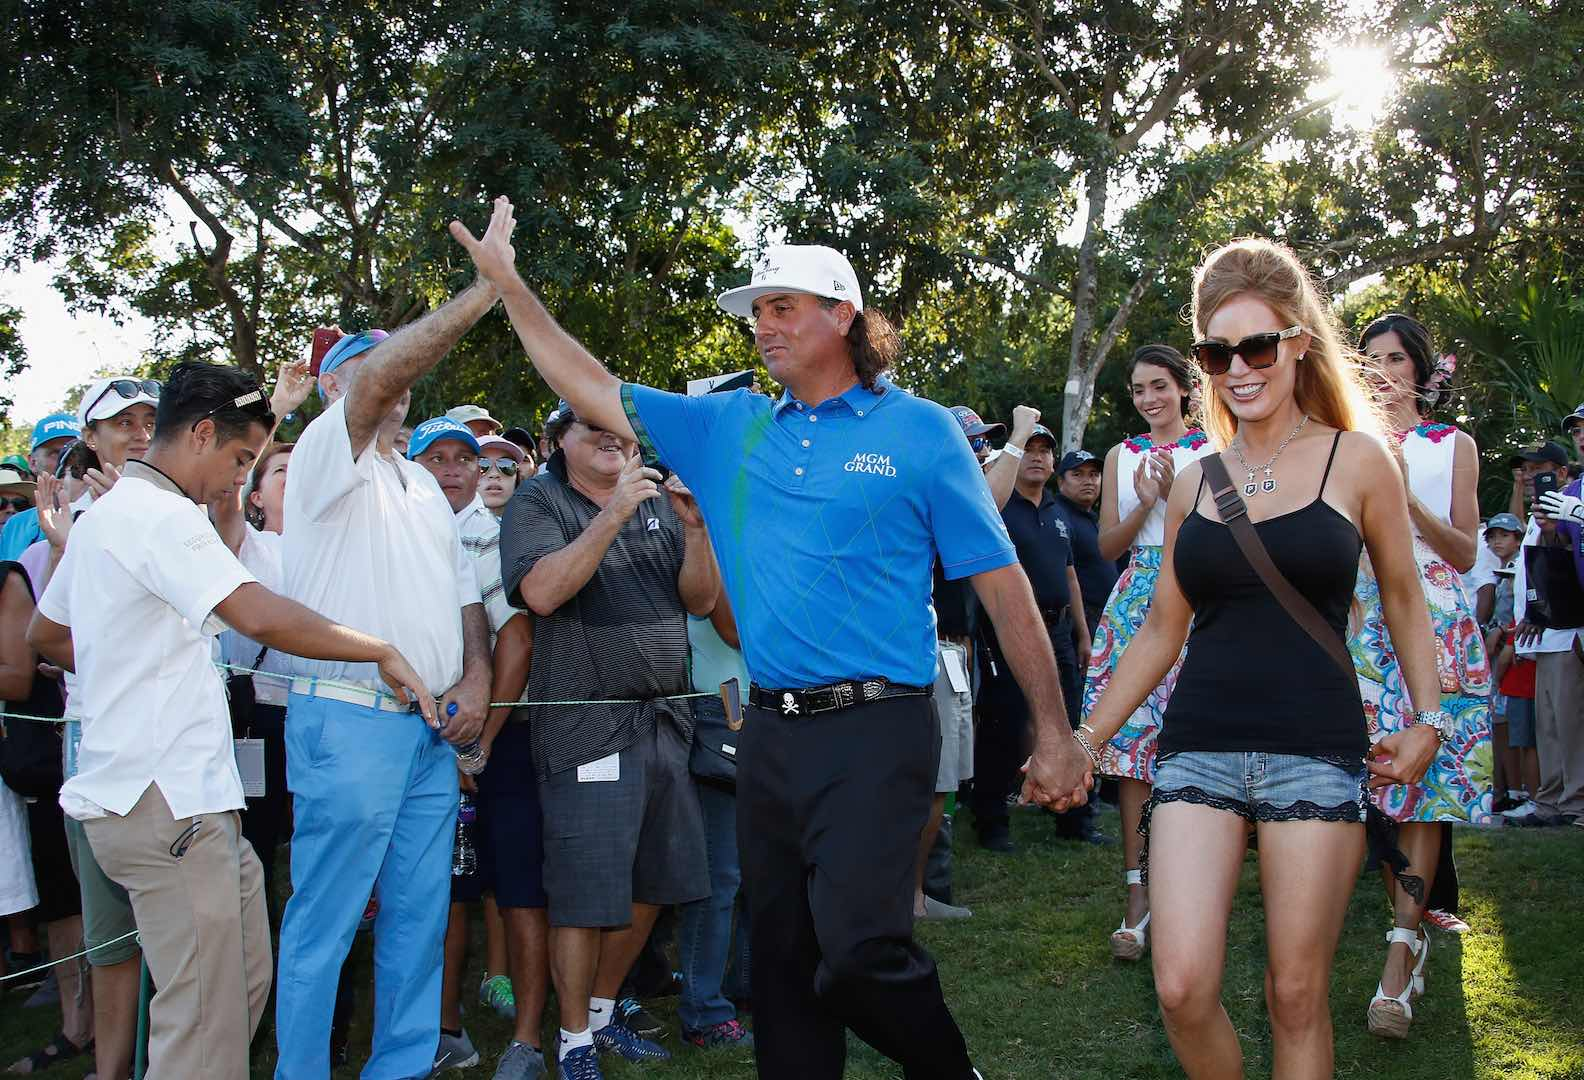 Pat Perez ends 7-year itch